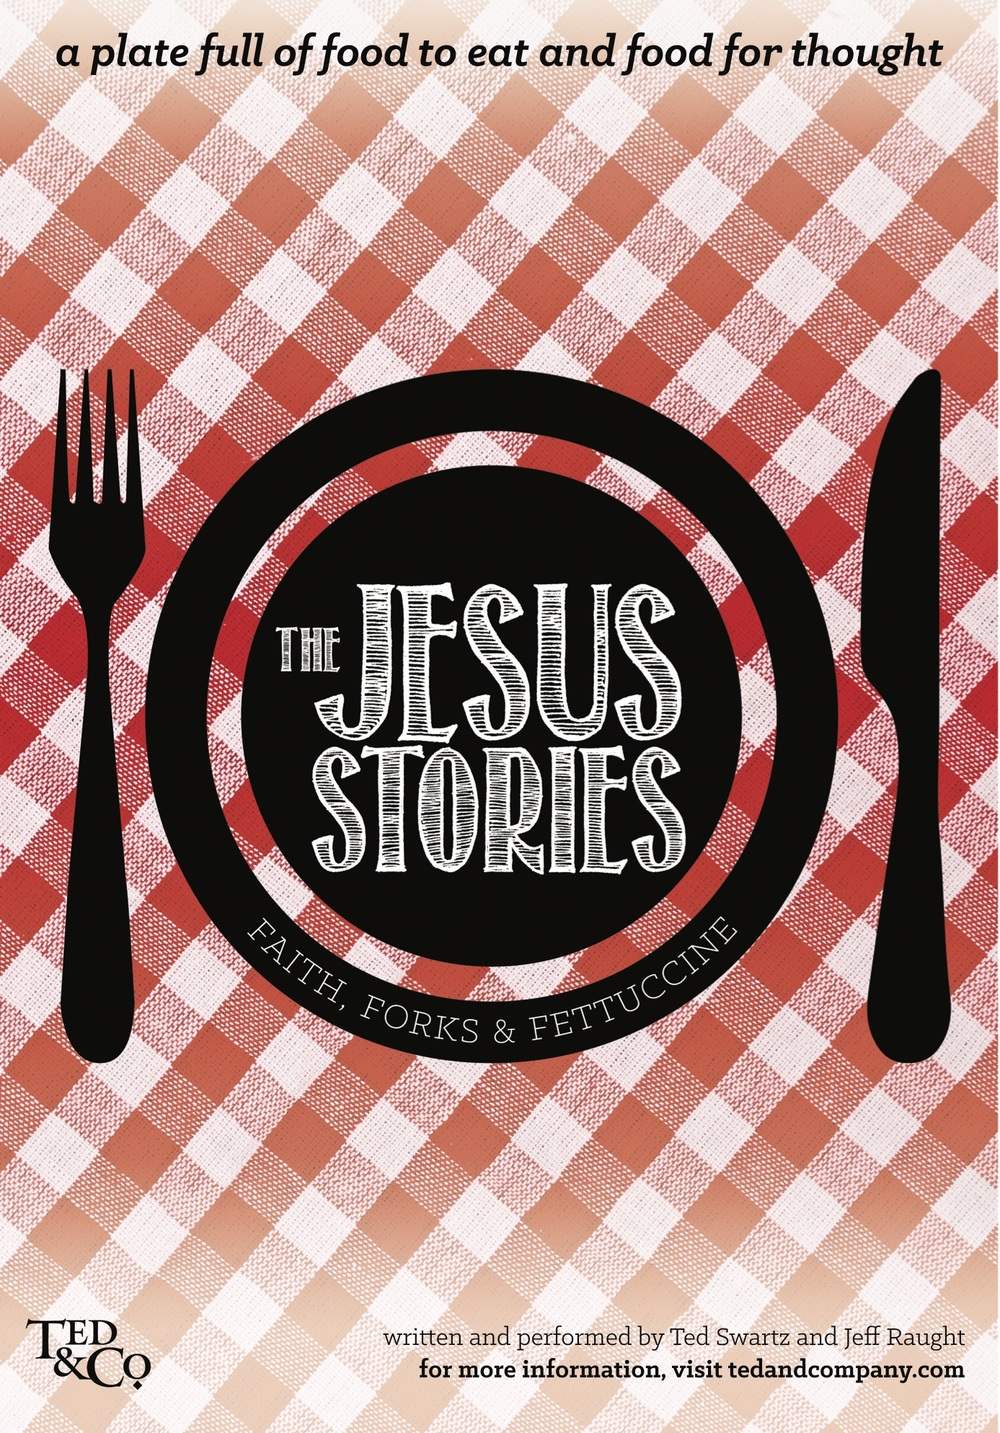 The Jesus Stories 9x13 Poster.jpg